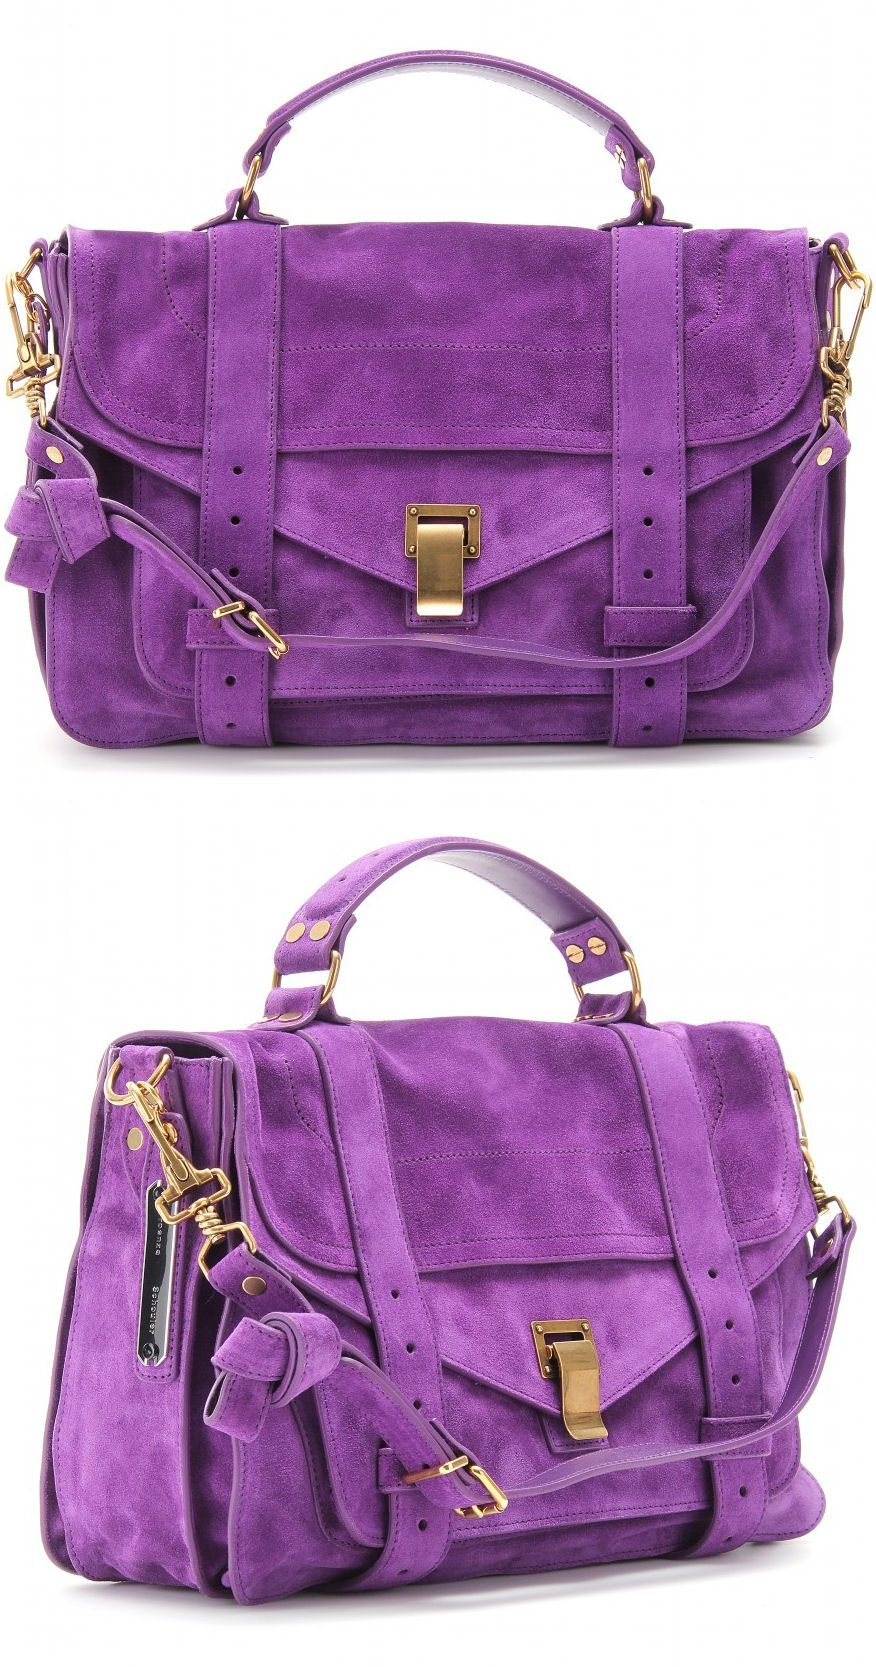 Purple Handbags Purse Tote Bags Coach Purses